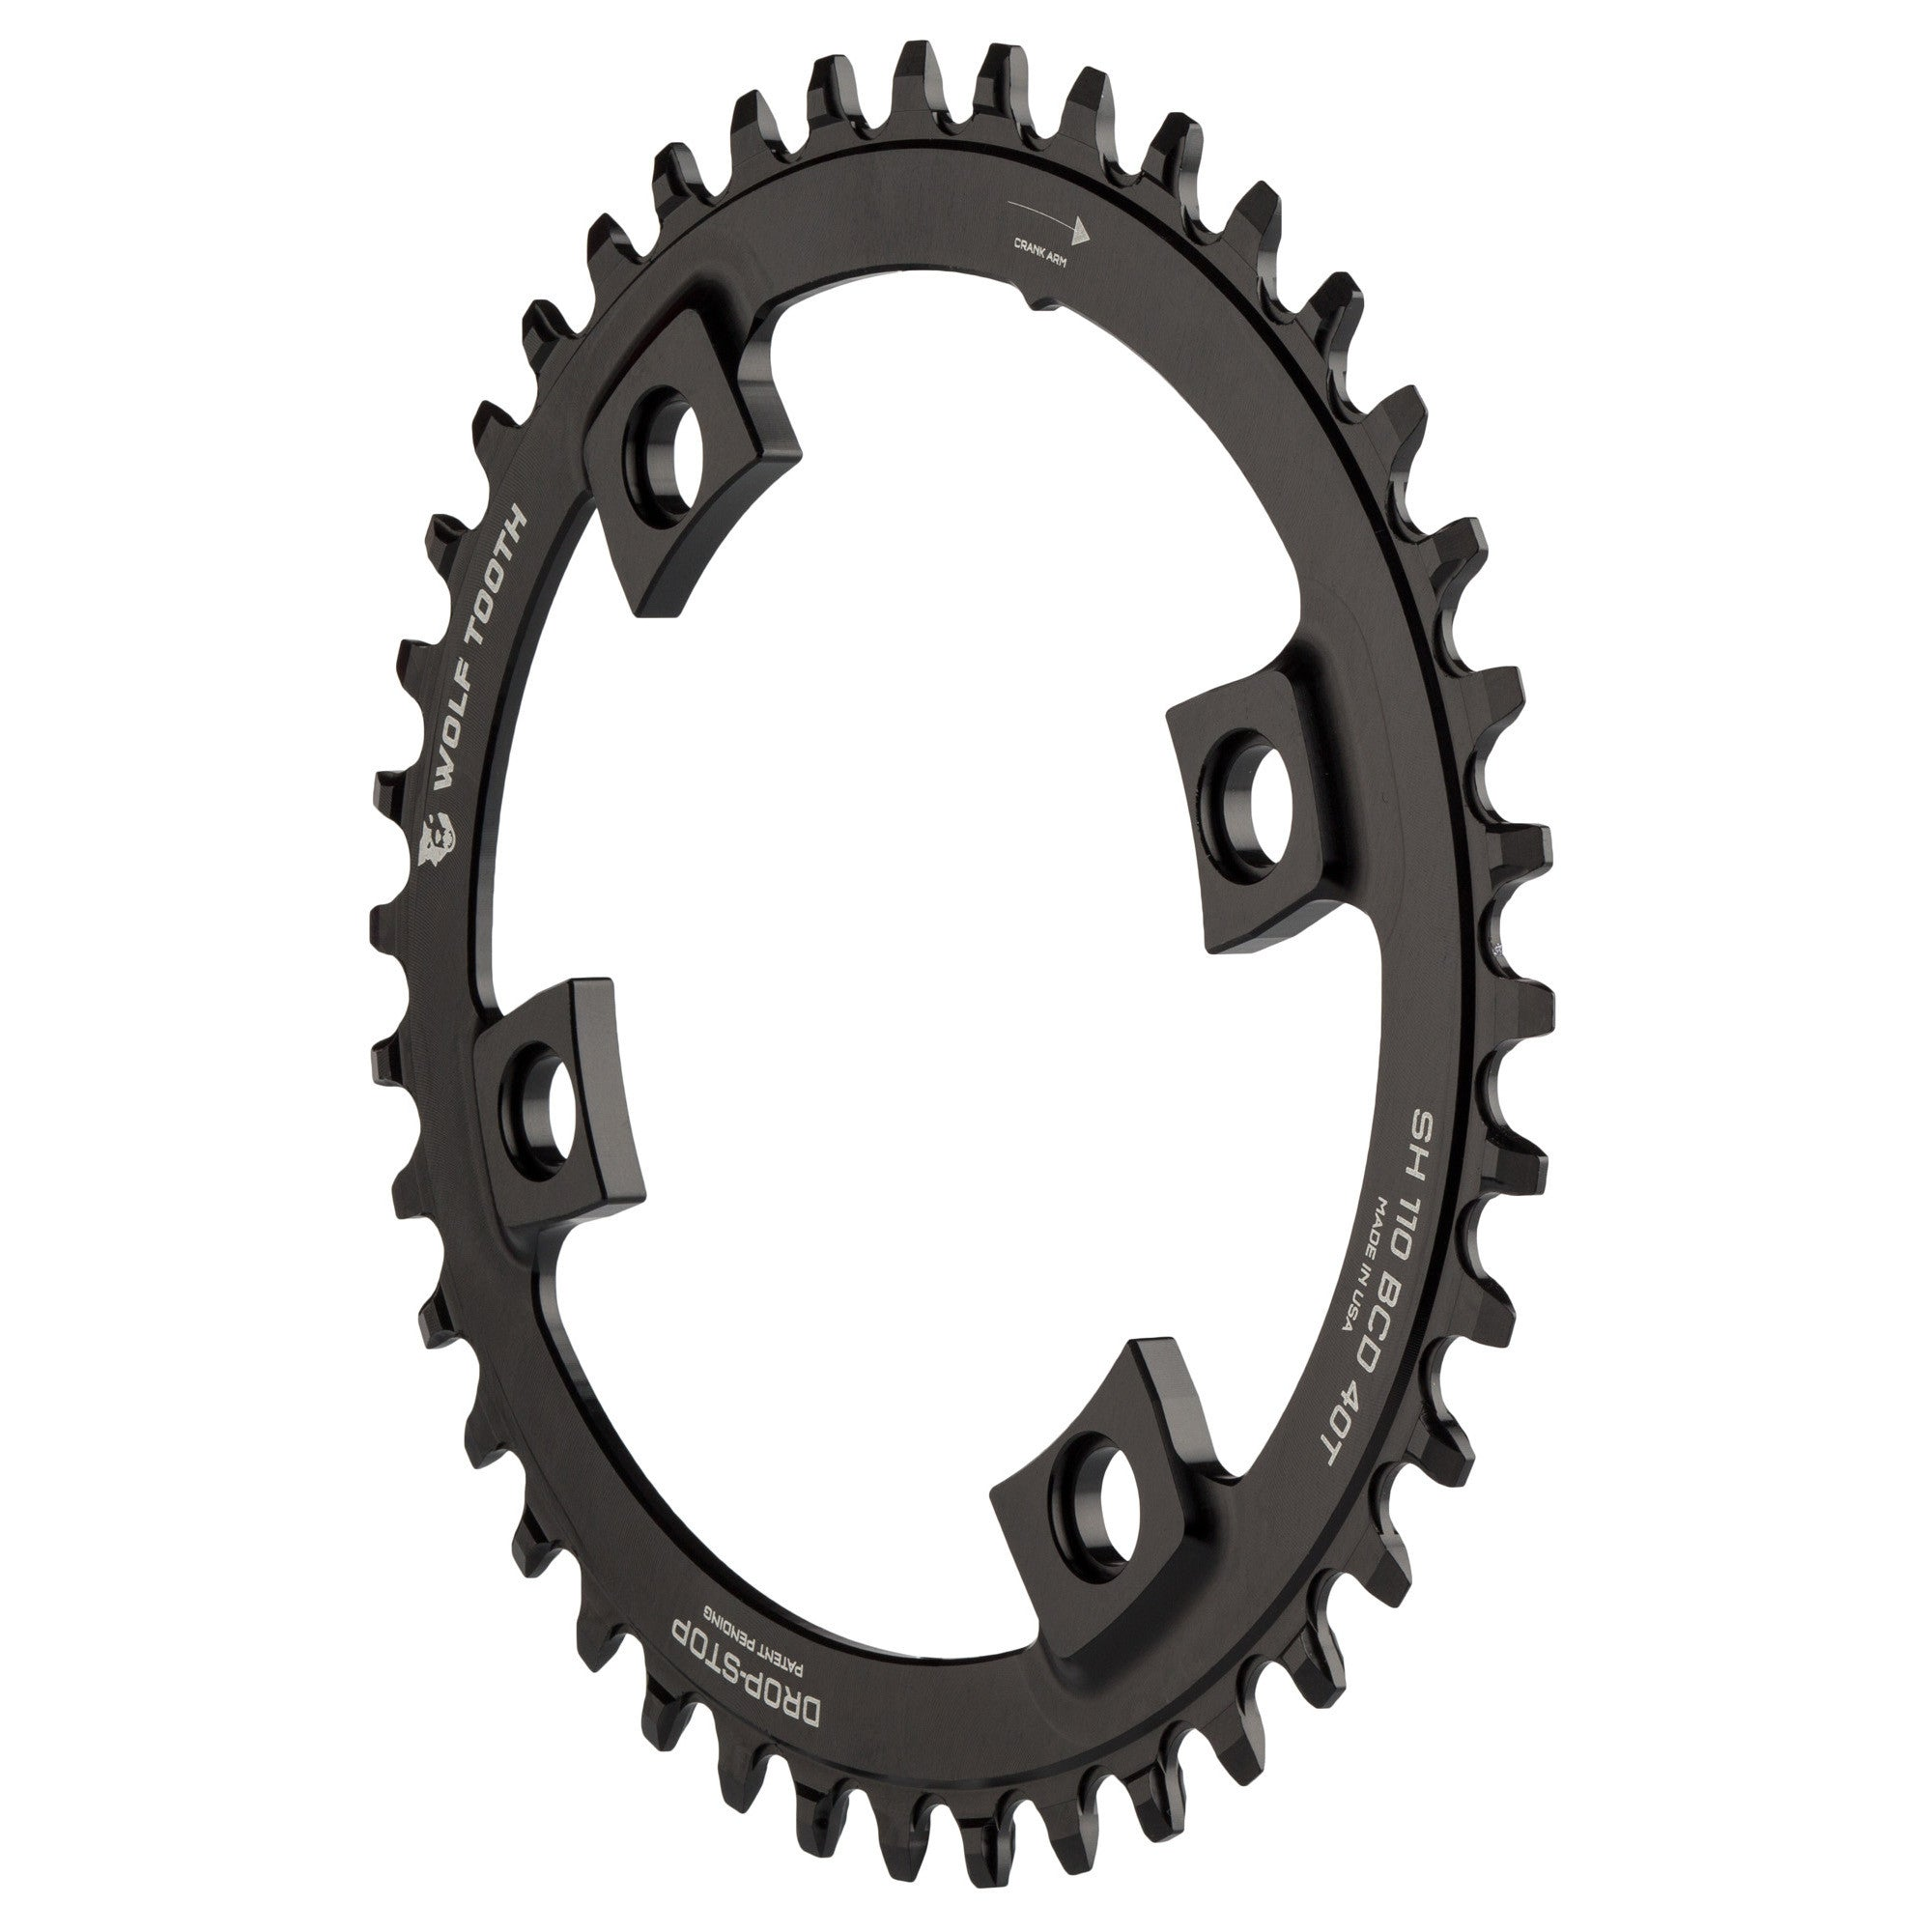 Oval BCD110 Bicycle Chainring Chainwheel 4 Bolt For Shimano M5800 6800 4700 9000